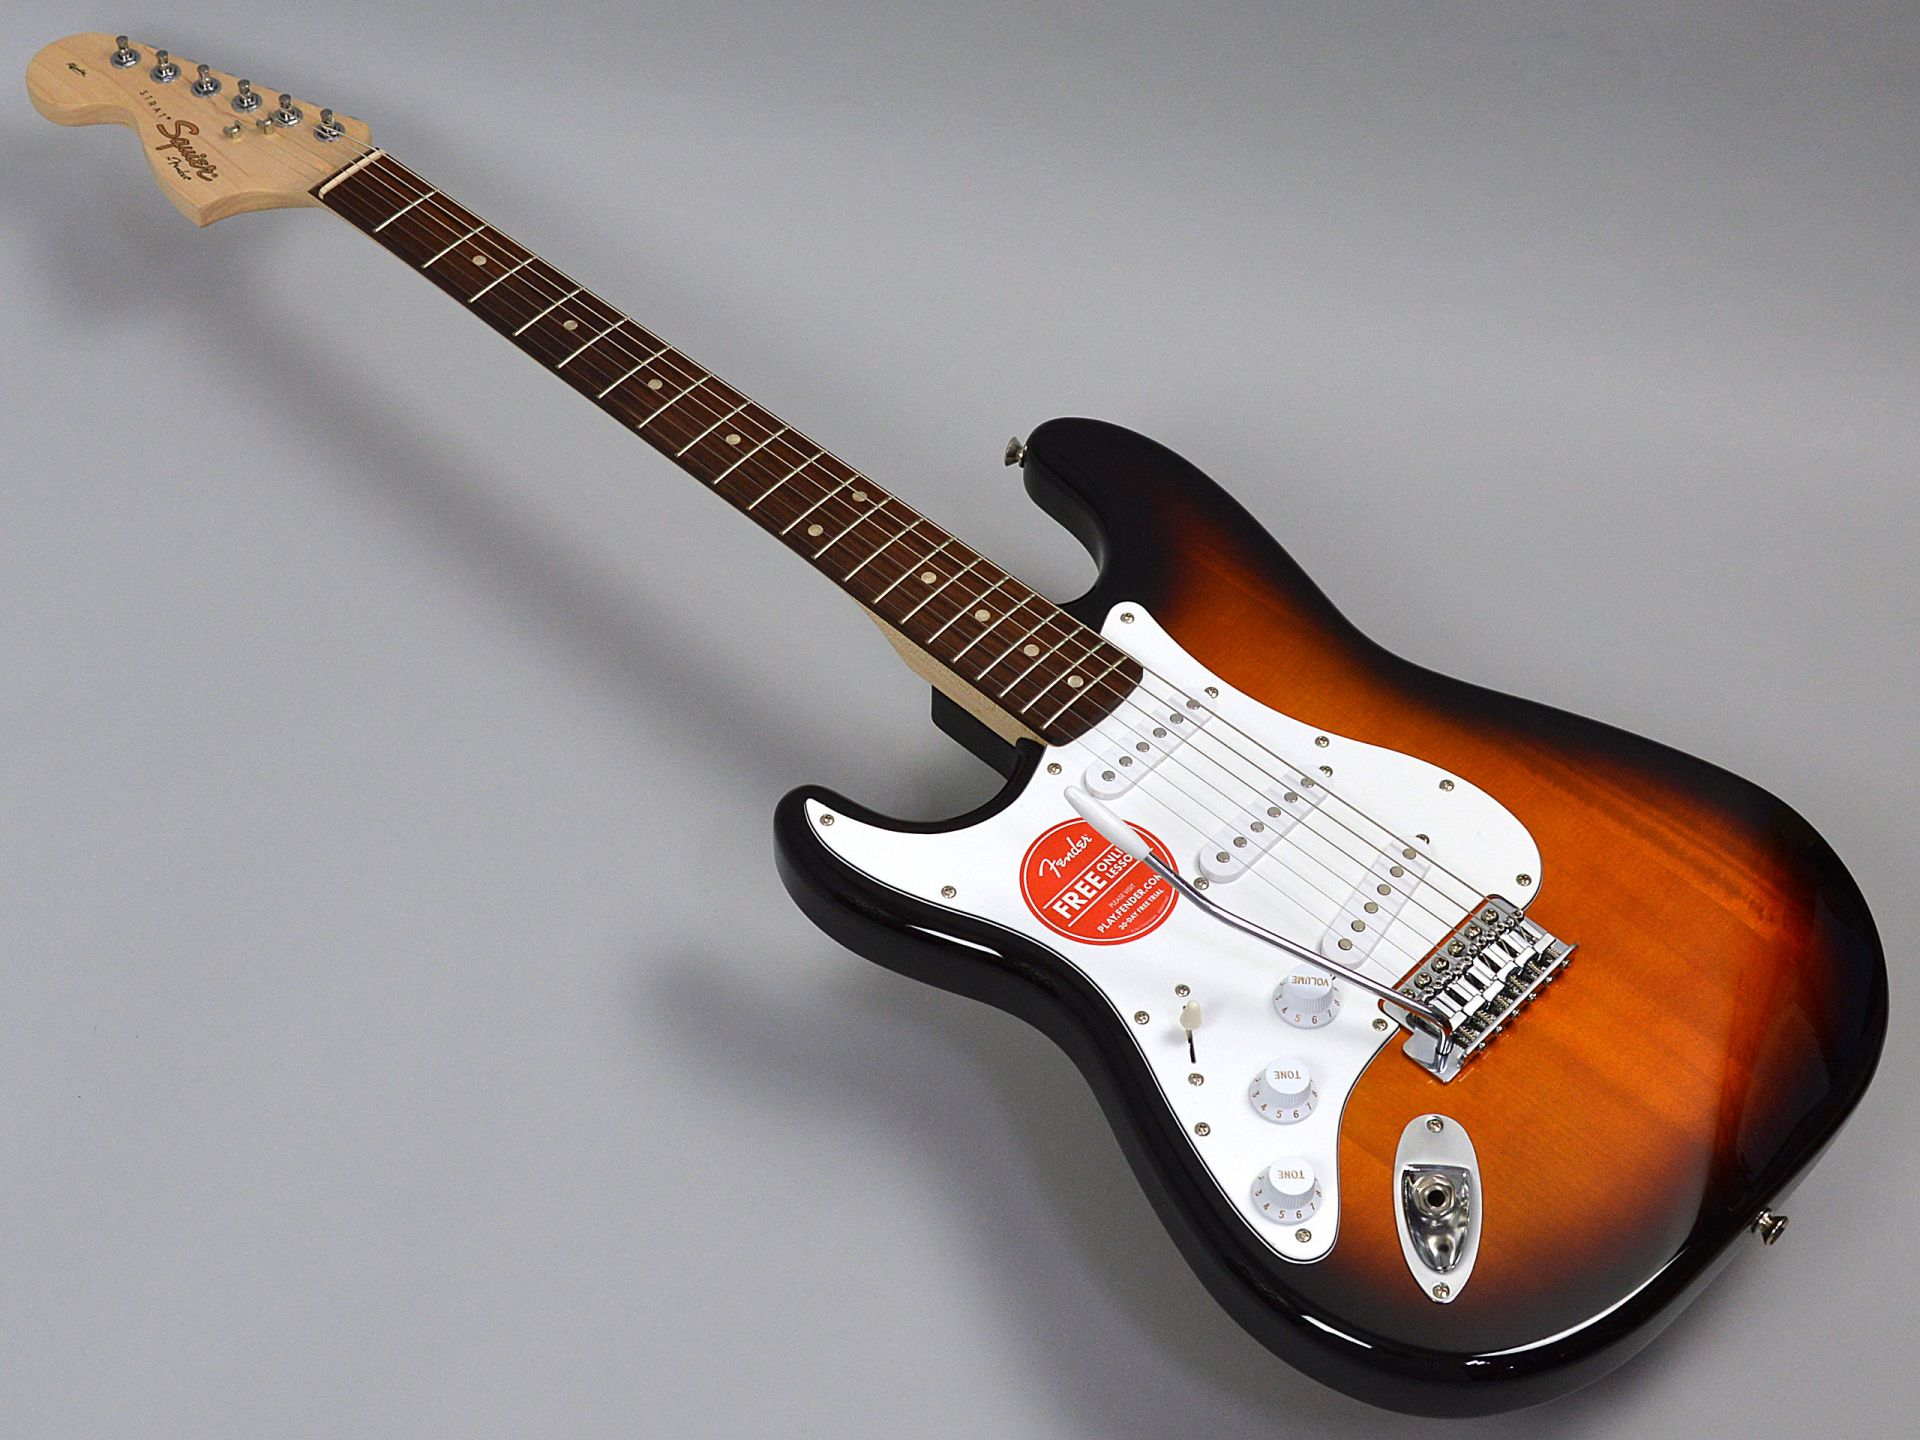 Squier by Fender  Affinity Series Stratocaster ... 写真画像